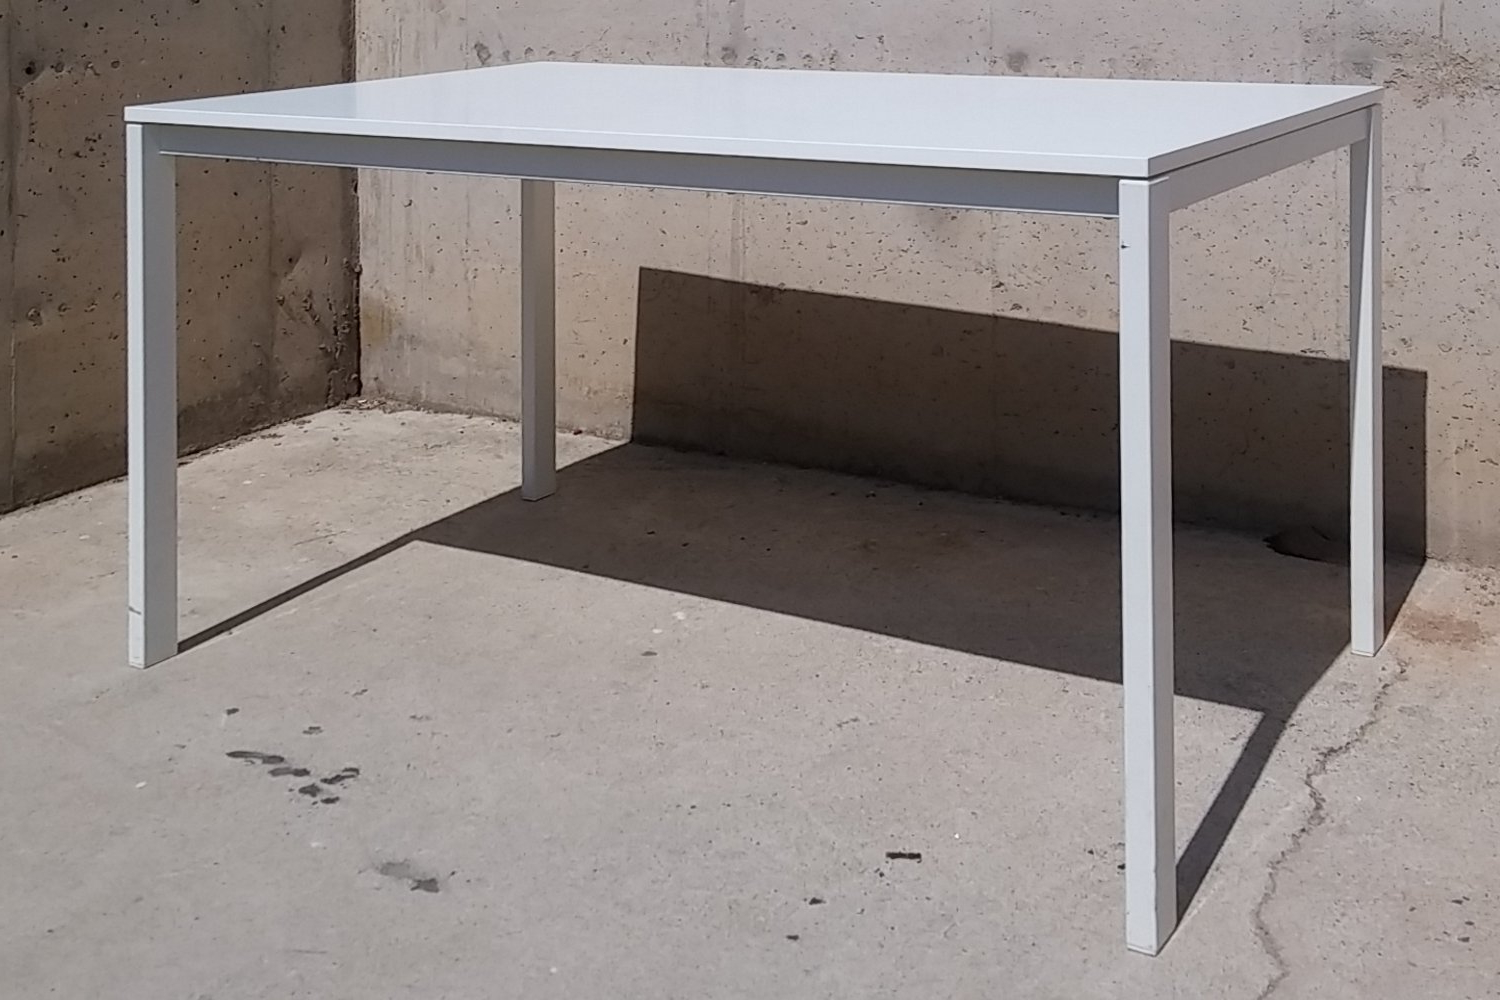 Mesa Abatible Pared Ikea 3ldq Mesa Plegable Ikea Pared Mesa Abatible ...